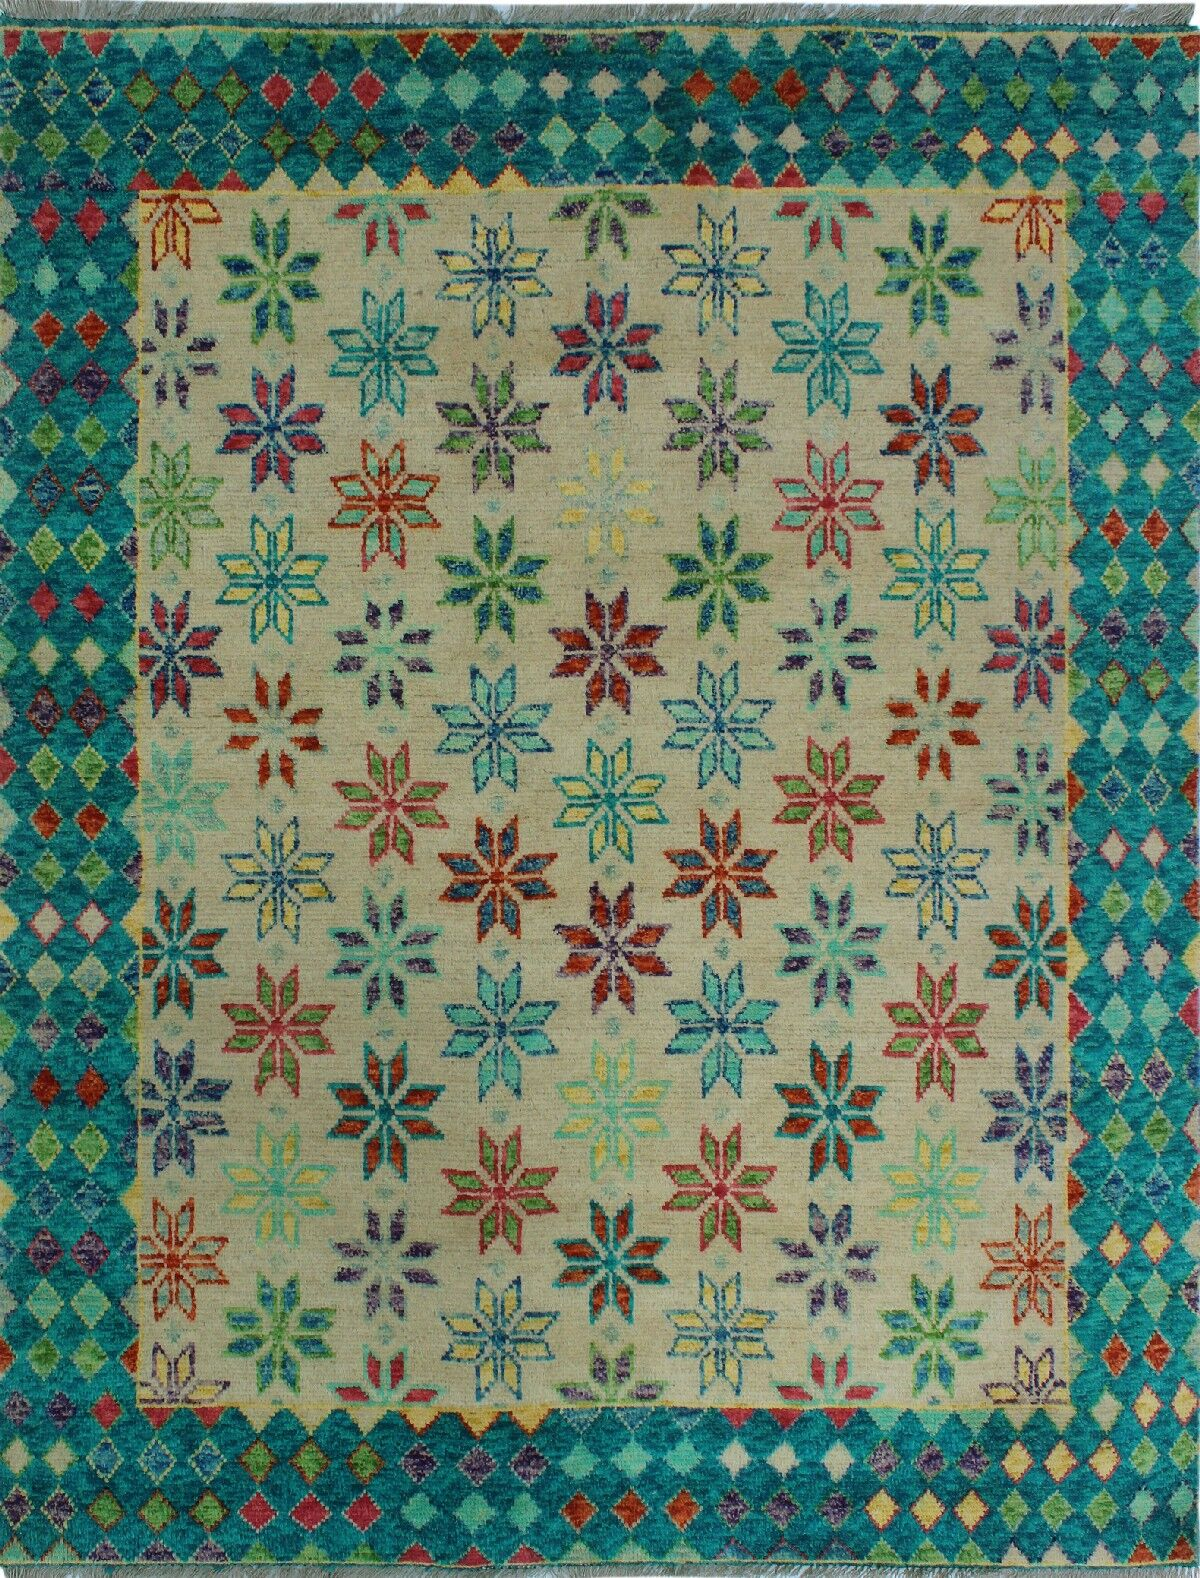 One-of-a-Kind Millender Trenton Hand-Knotted Wool Blue/Beige Are Rug